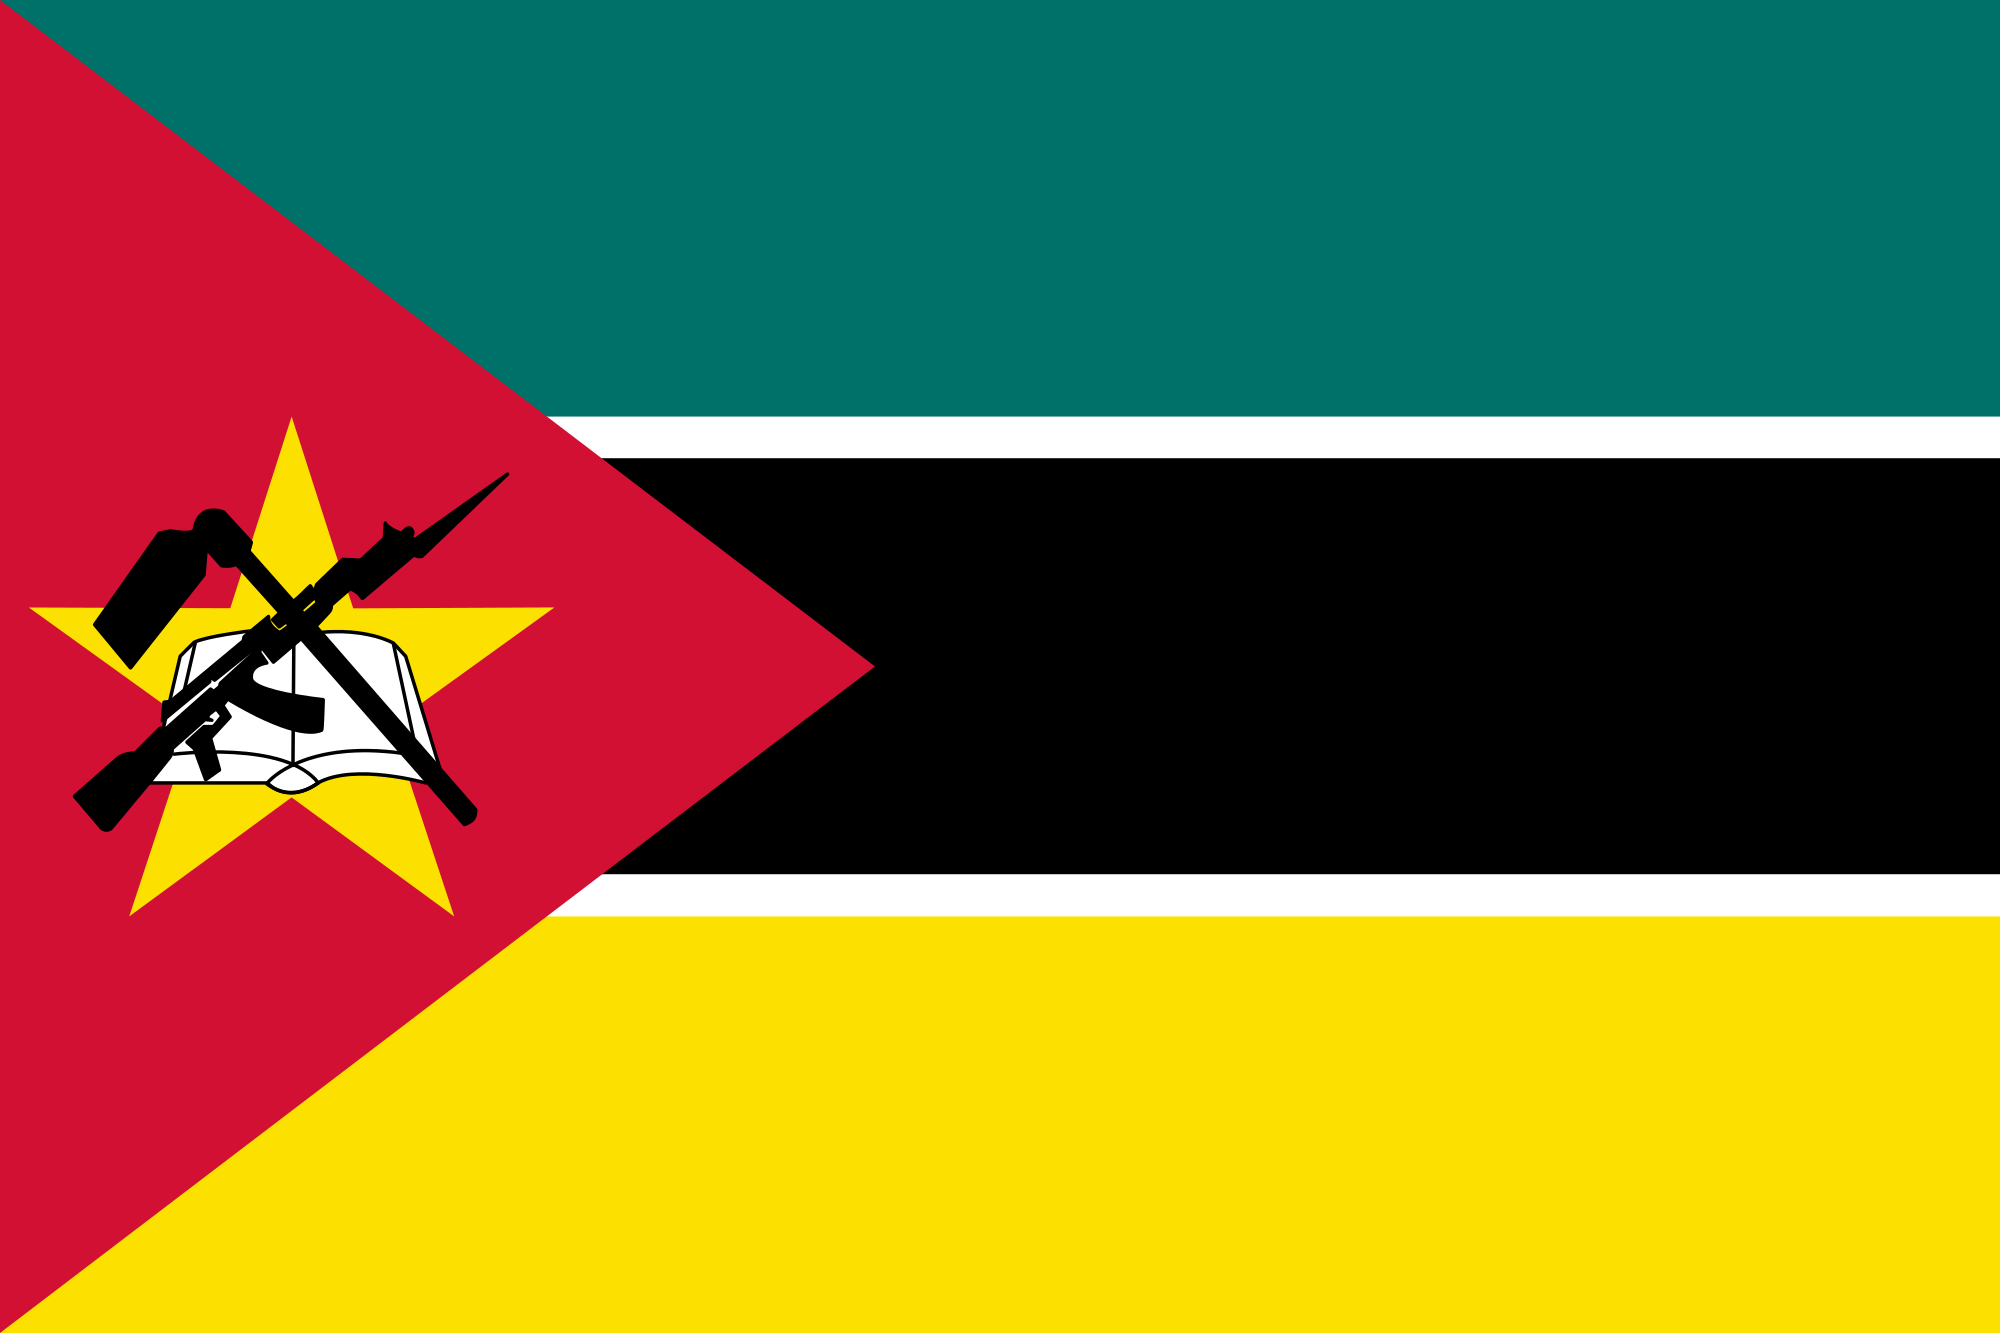 ICSID Publishes Award in CMC v. Mozambique